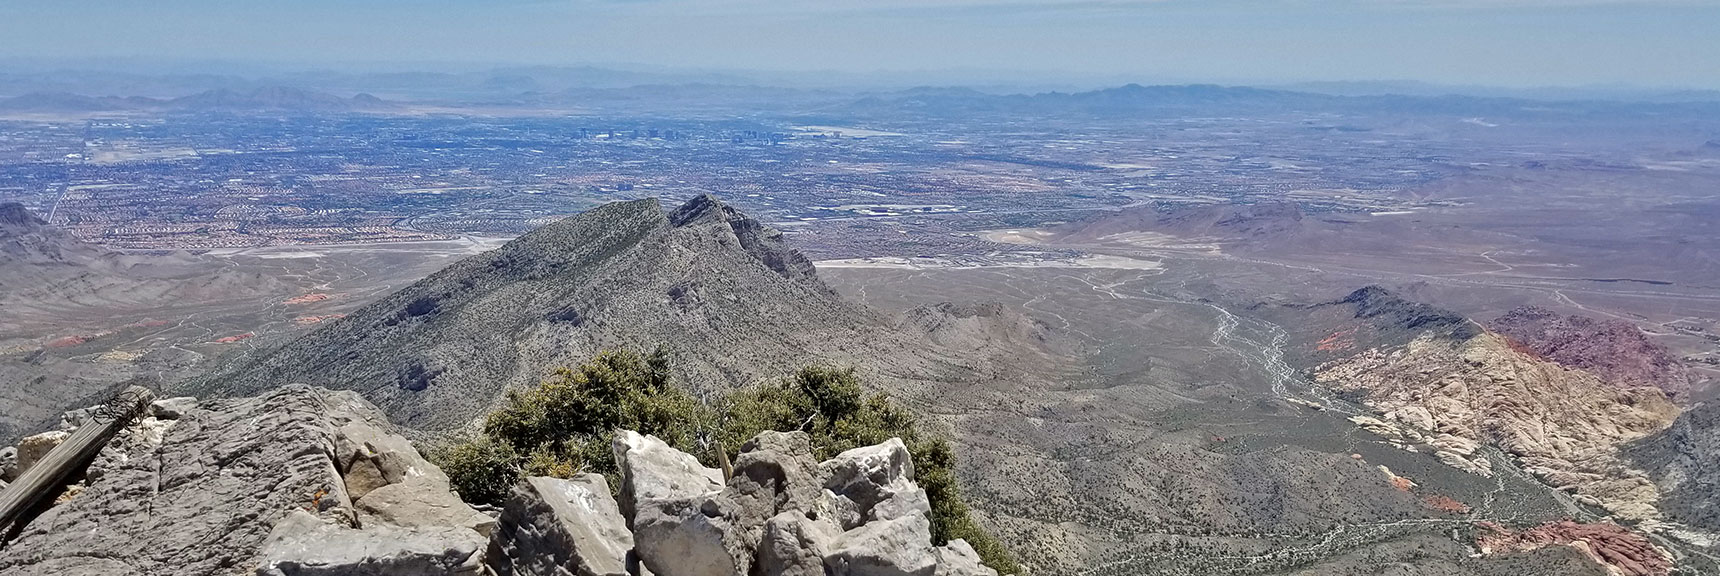 Damsel Peak and Southern Las Vegas Valley from La Madre Mountain Summit | La Madre Mountain Northern Approach, Nevada